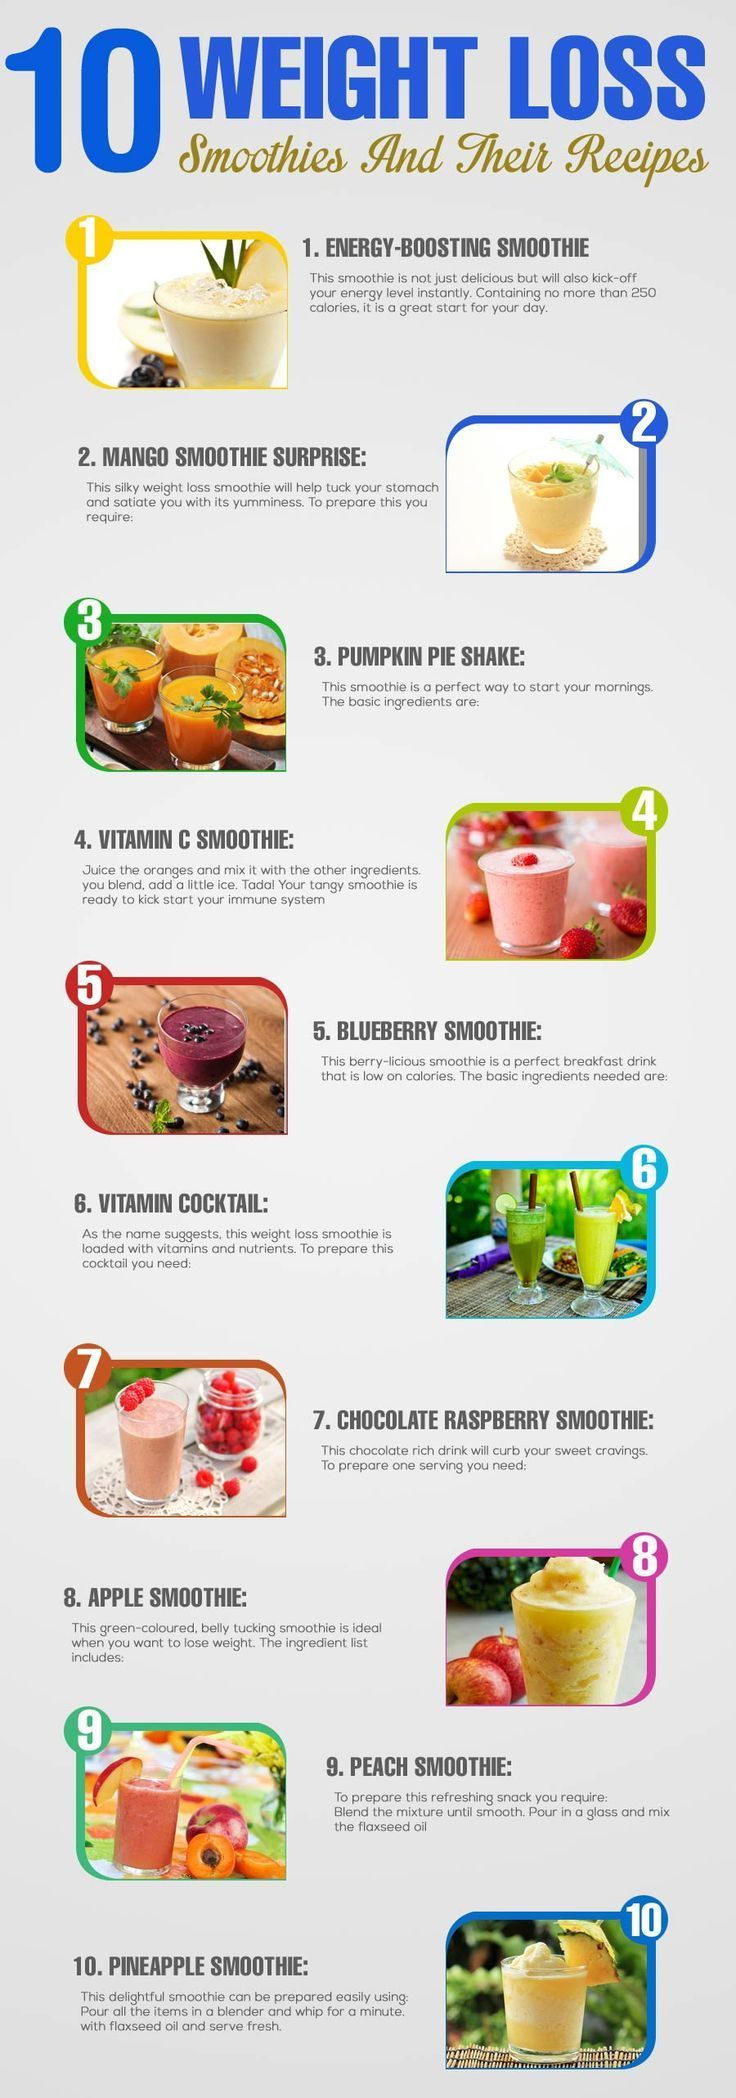 The nutritious & delicious way of losing fat is by including smoothies. Shed your excess belly fat by just sipping in these weight loss smoothies. Here are best smoothie recipes for you.#weightloss #weightlosssmoothies #lossweight #weightlossrecipes